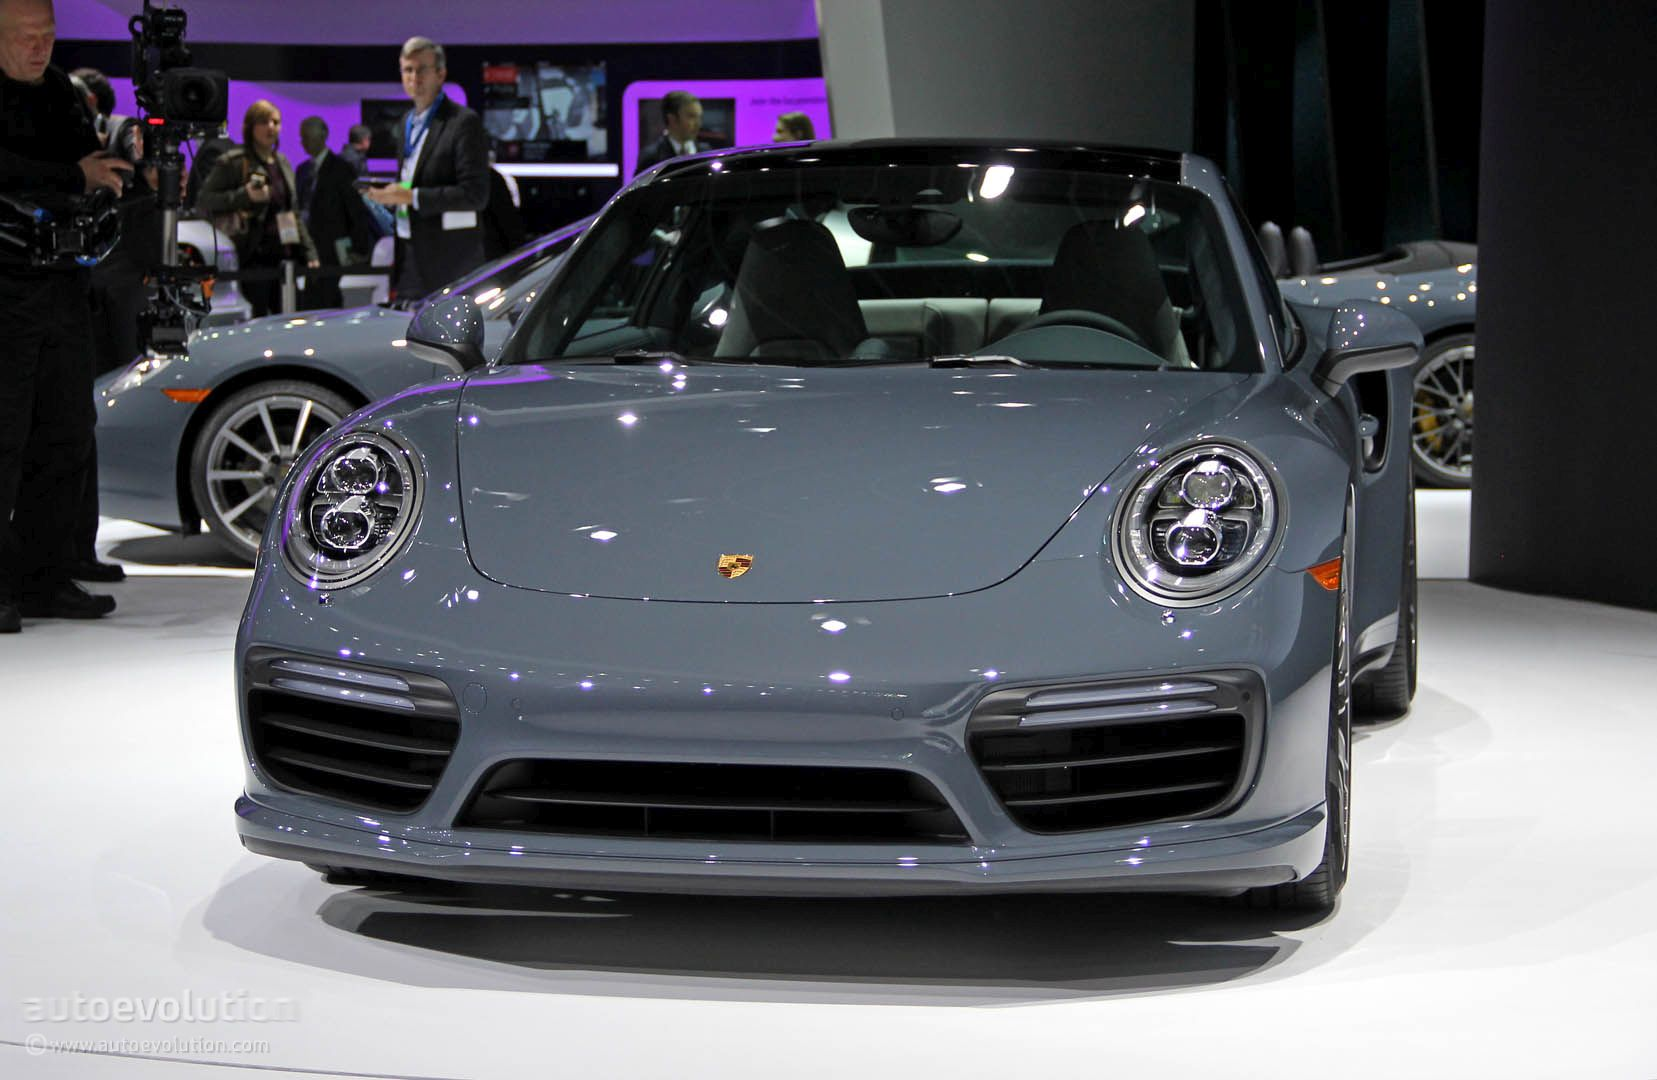 2017 porsche 911 turbo turbo s bring their anti lag tech wizardry to detroit autoevolution. Black Bedroom Furniture Sets. Home Design Ideas